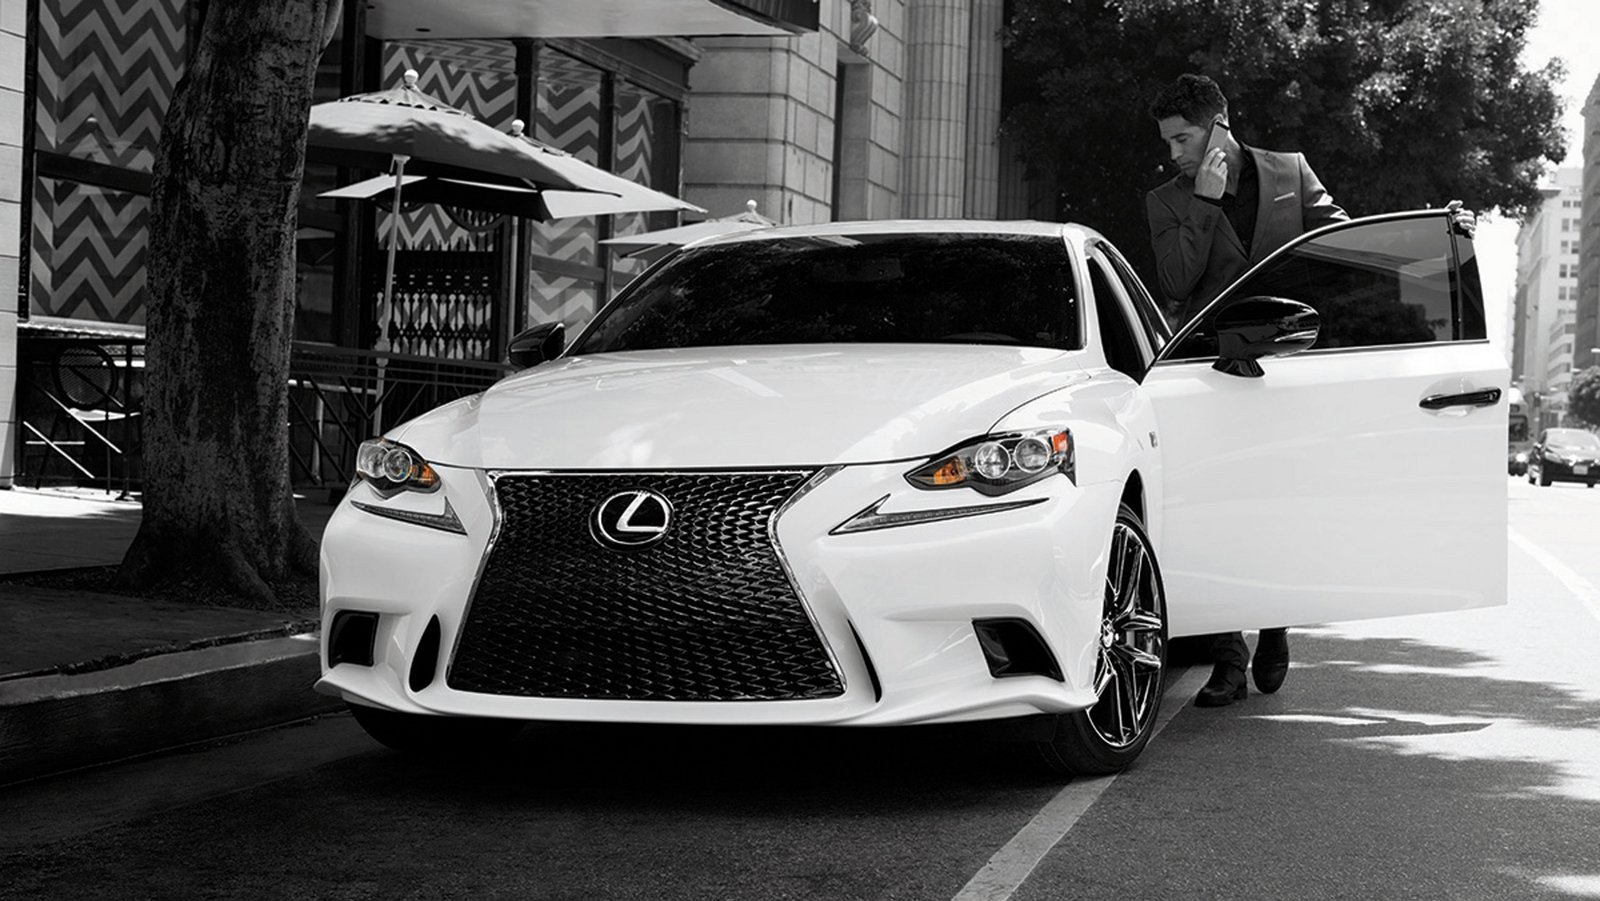 Who Makes Lexus Cars: 2015 Lexus IS Crafted Line Edition